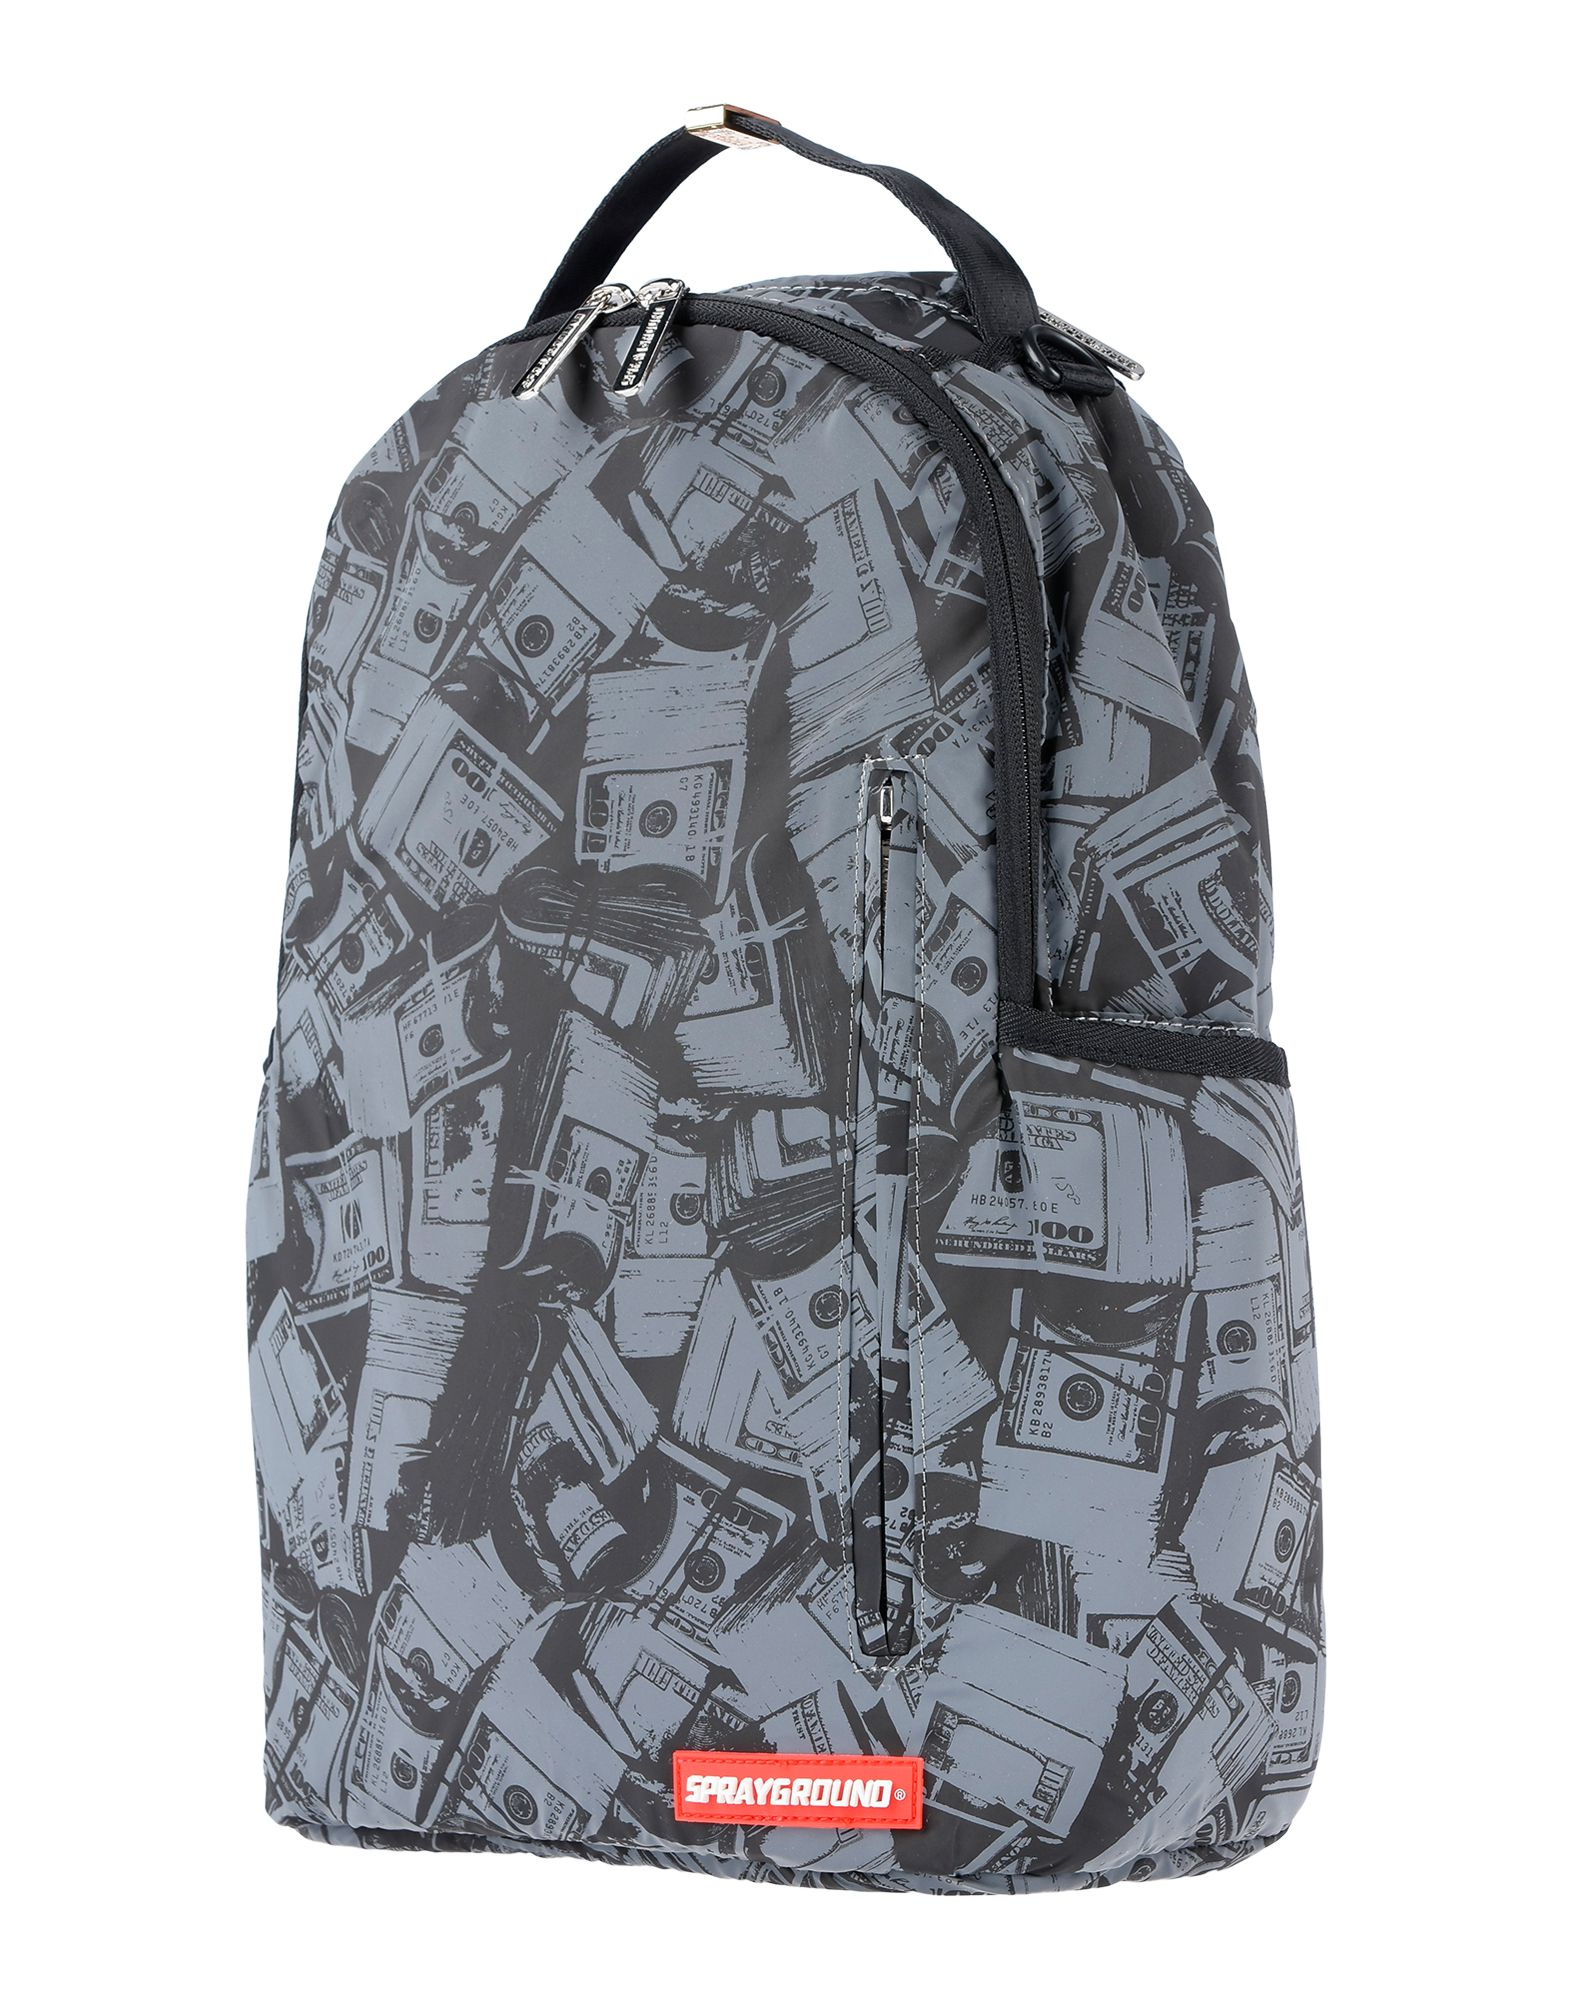 2d6e1452 New Sprayground Backpacks | Building Materials Bargain Center